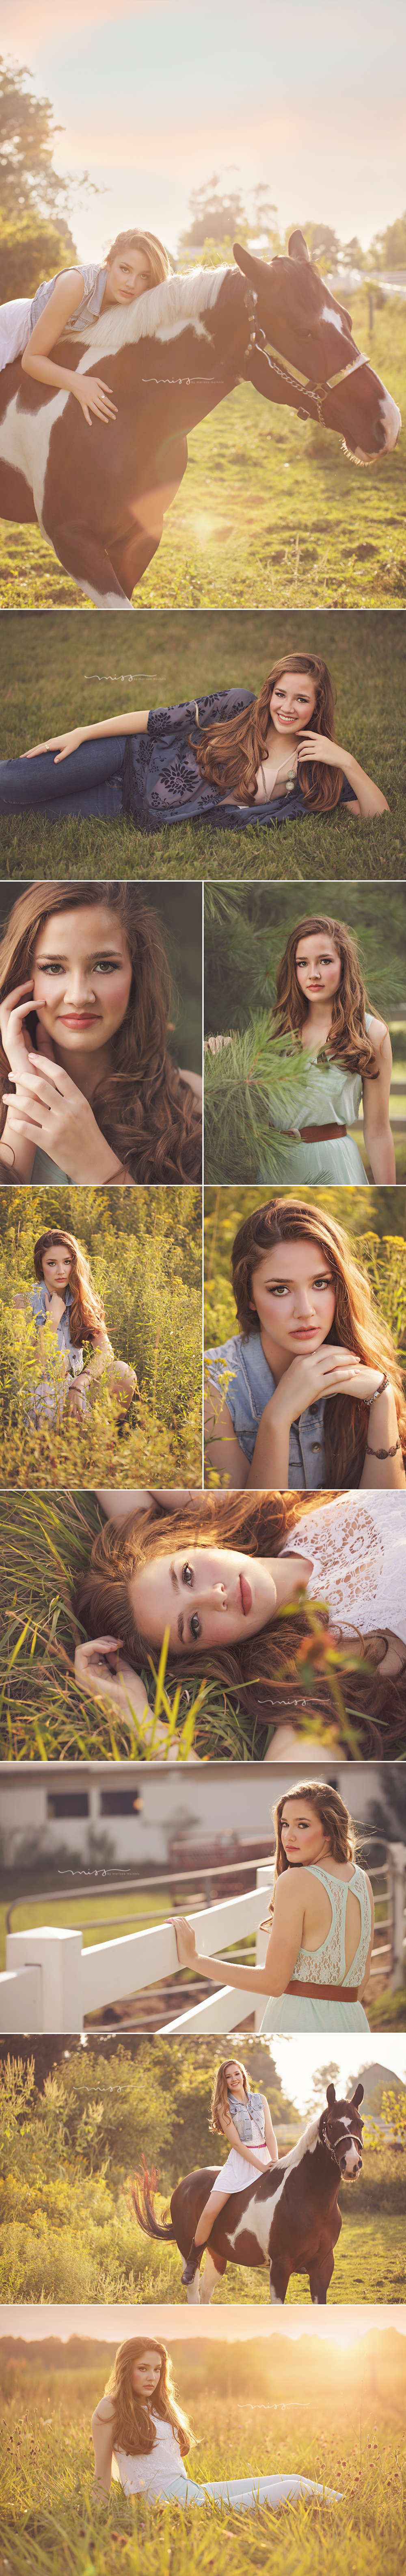 Ann Arbor Senior Photos | Lysette 2